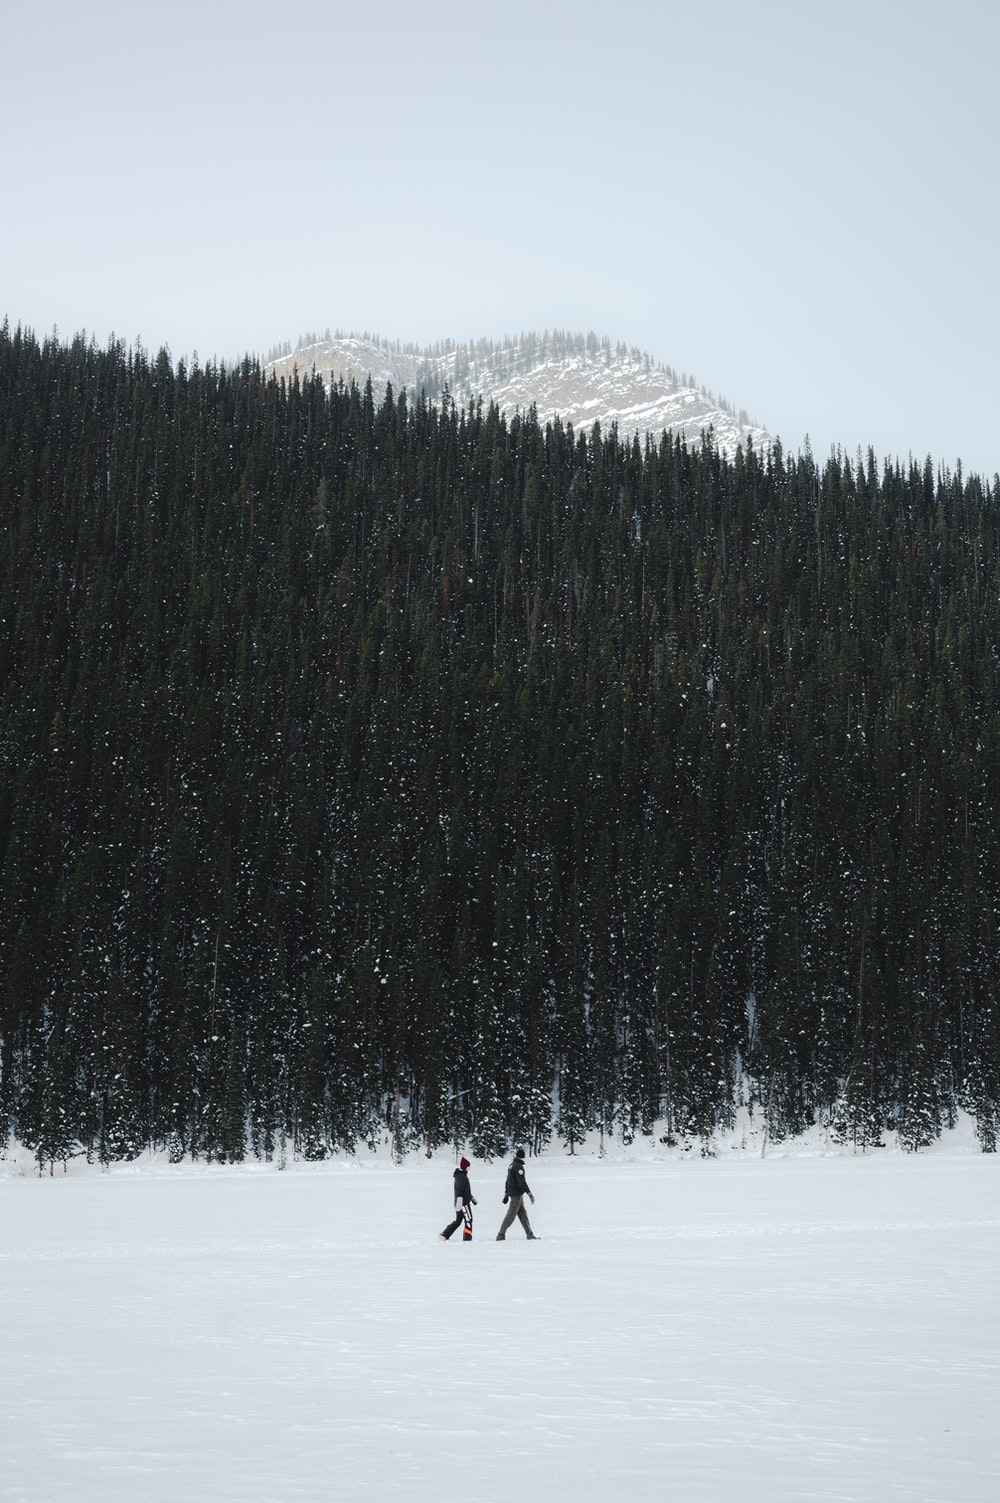 person walking on snow covered ground near green trees during daytime